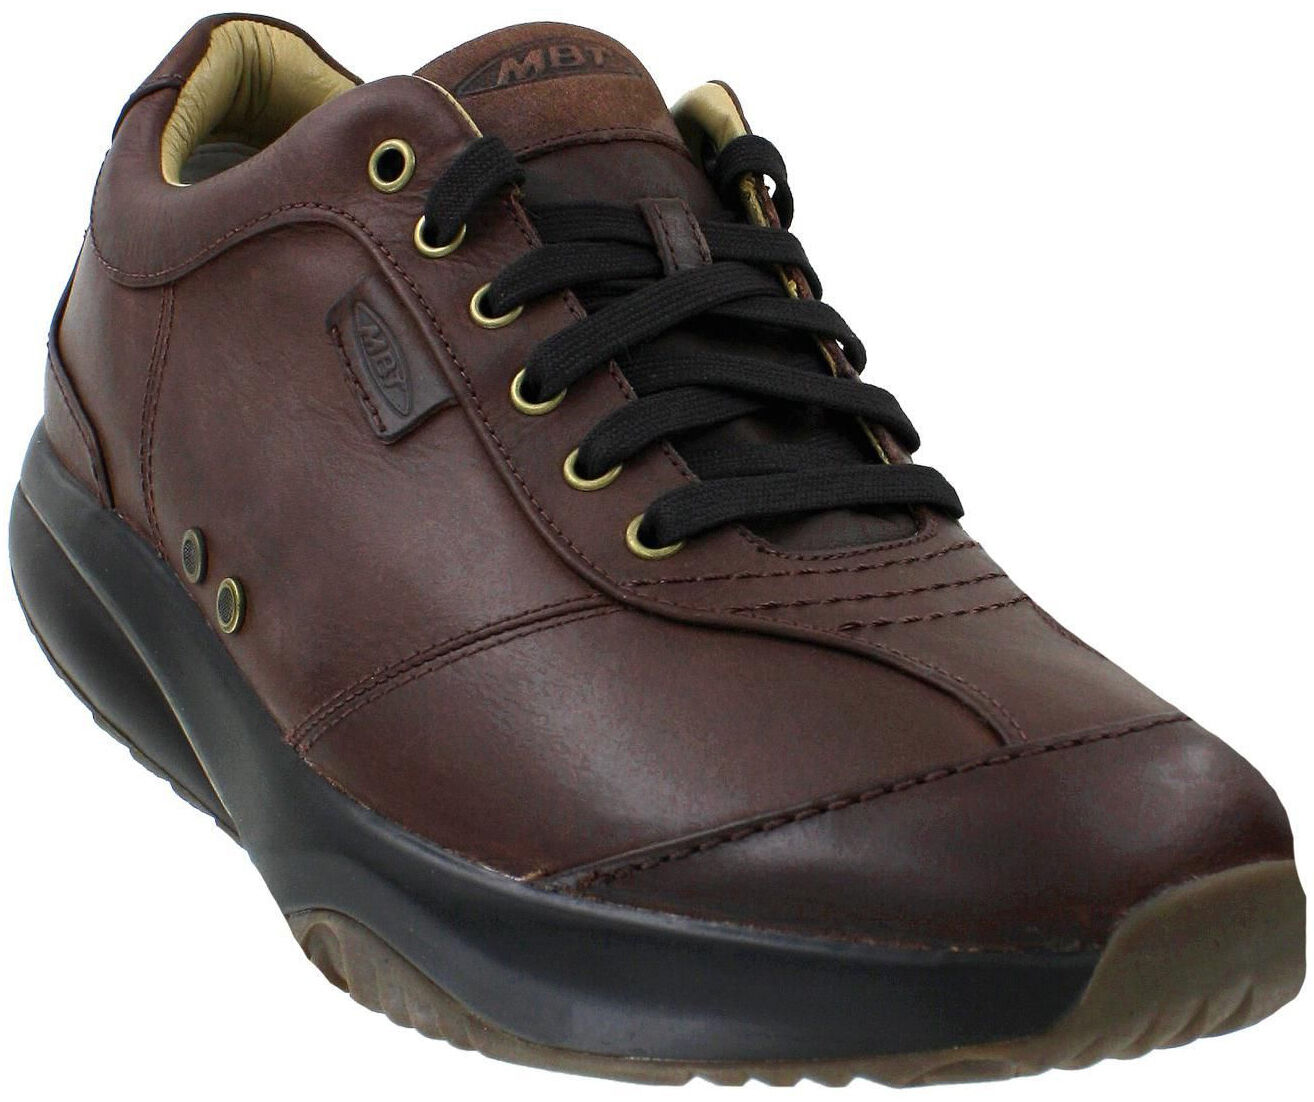 Men Merrell Shoes Images Waterproof Hiking Boots